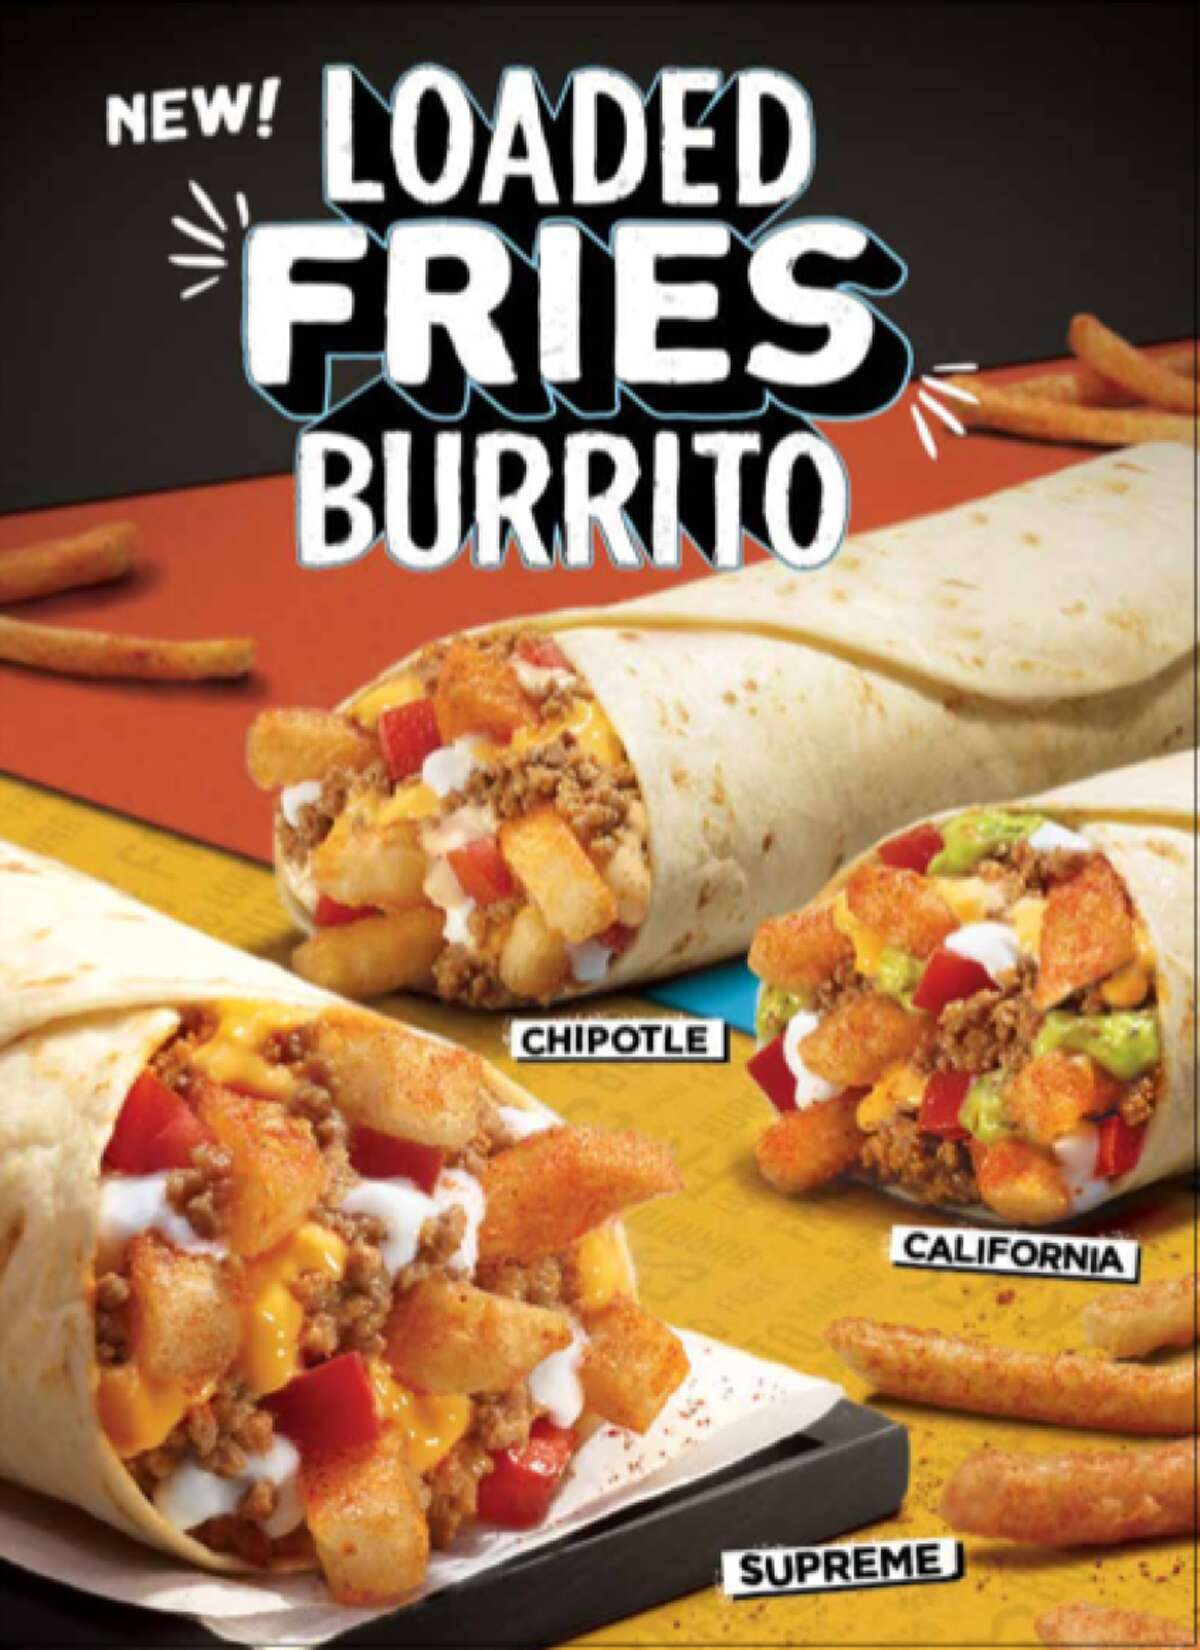 Taco Bell is testing a new food item, the